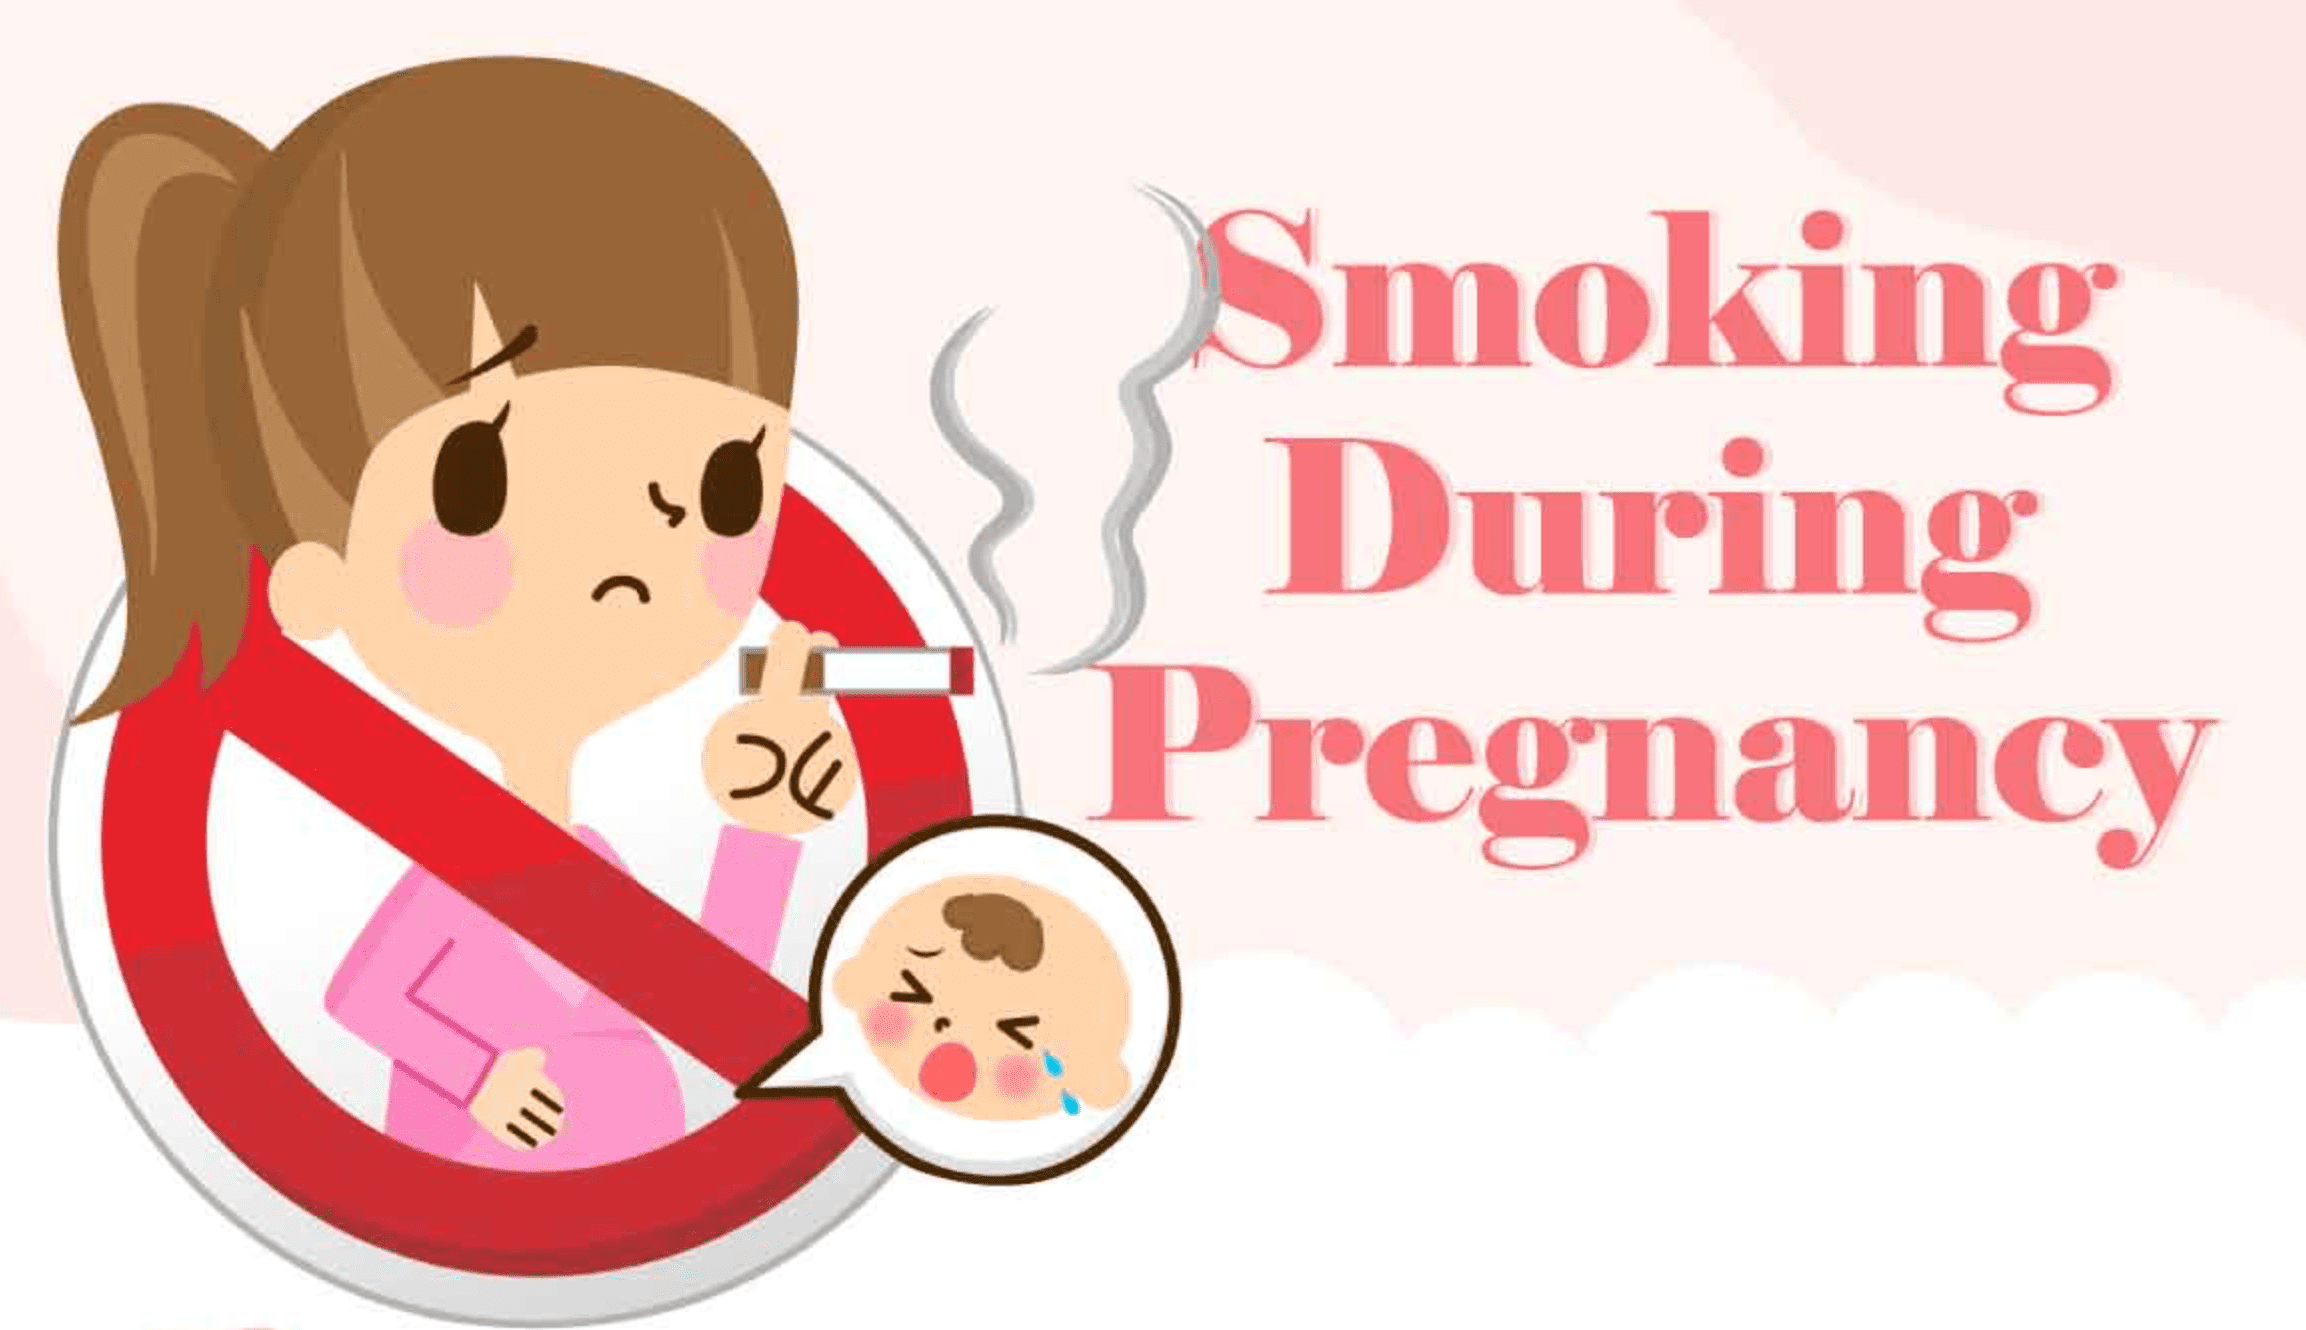 Smoking During Pregnancy; graphic courtesy of ChildMode.